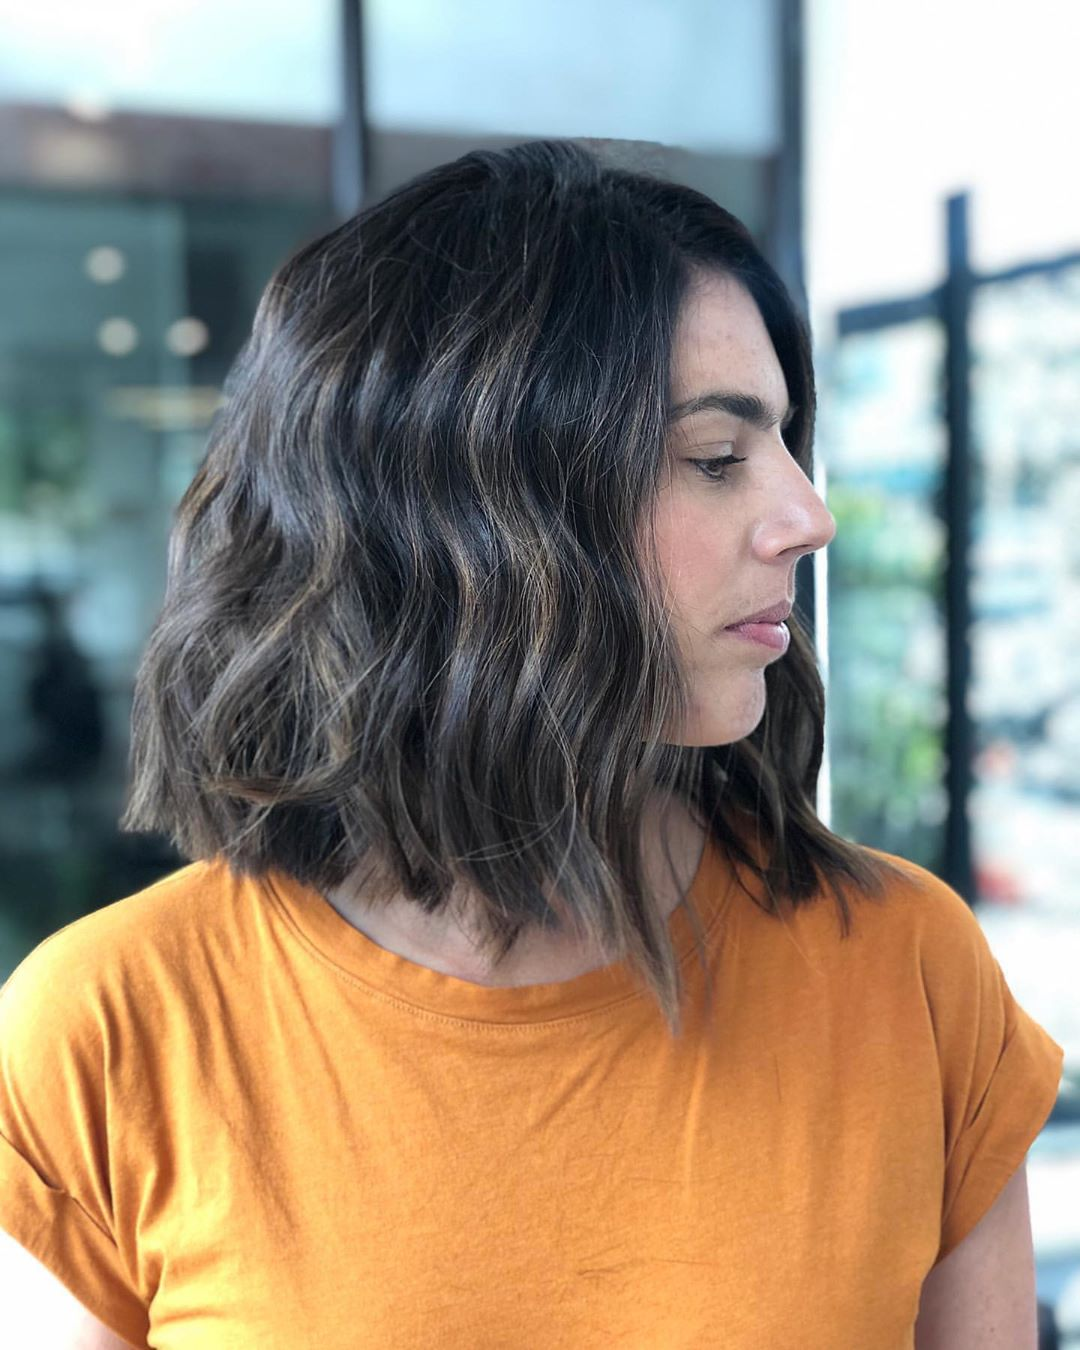 best short hairstyles for women 2 10 Ultra-Trendy Short Haircuts for Women